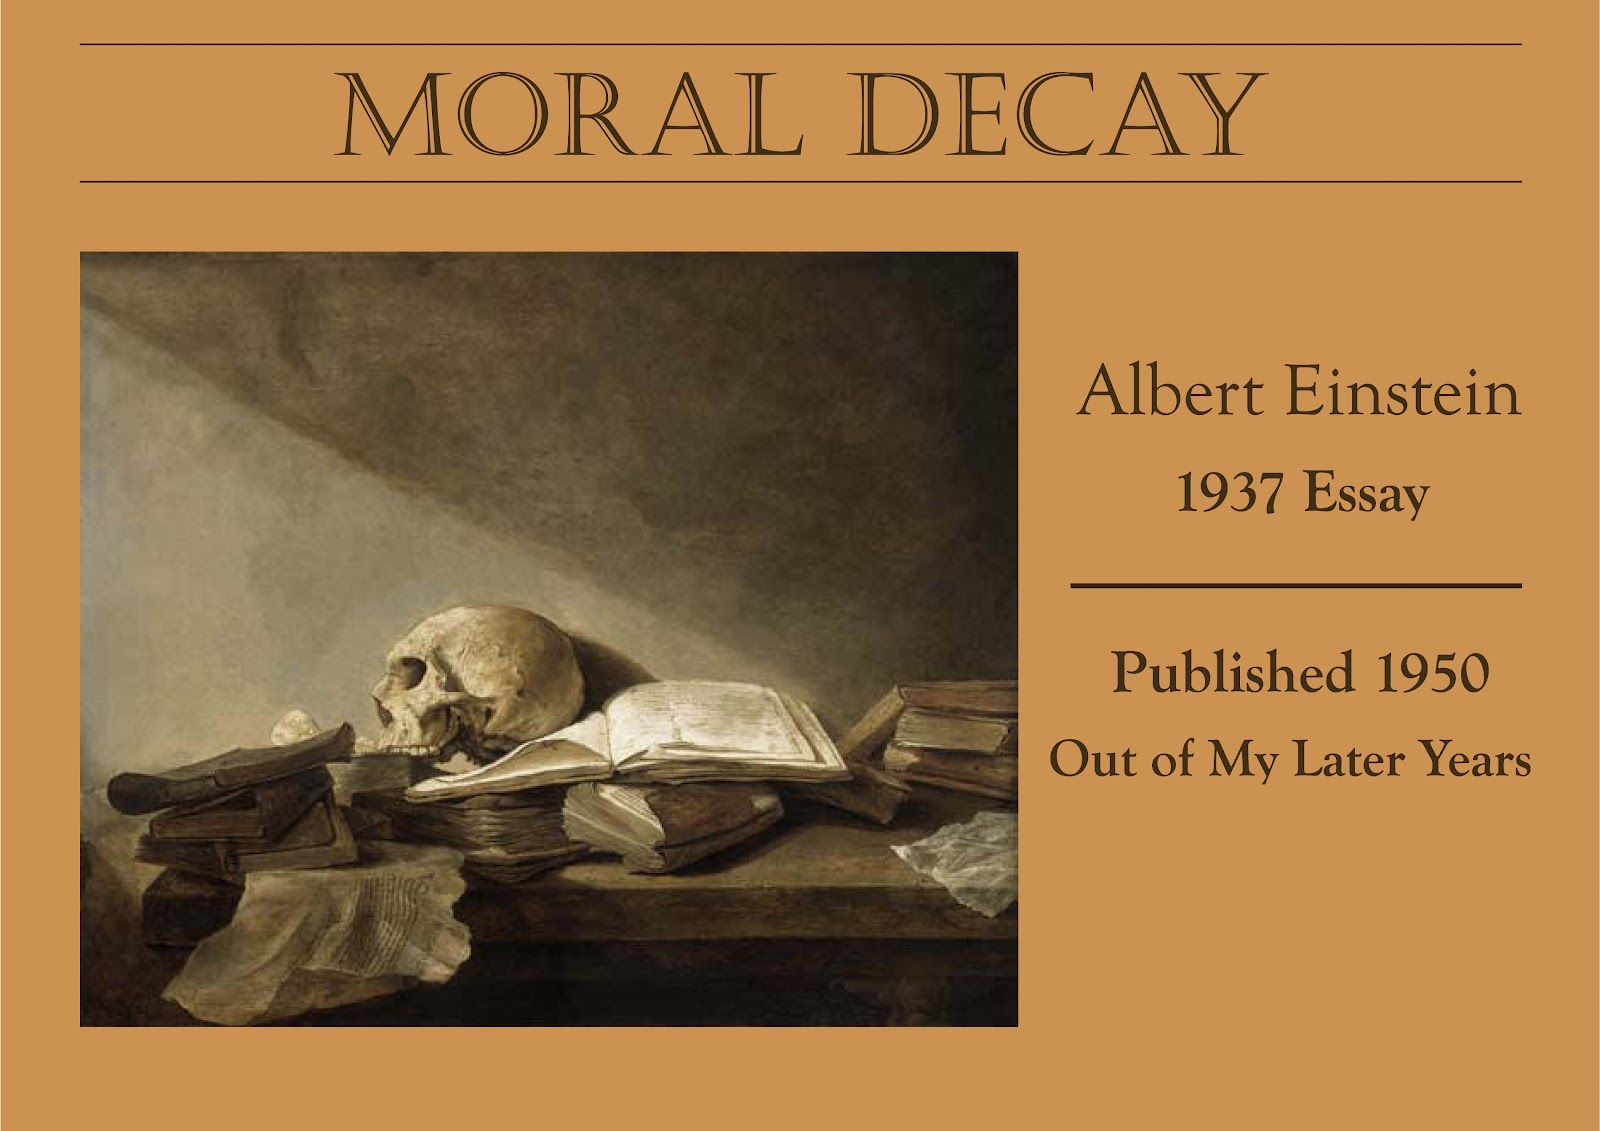 my science heroes einstein moral decay this particular essay seems timely for all of us it resonates widsom a soulful attempt to heed warning and offer dutiful prospects